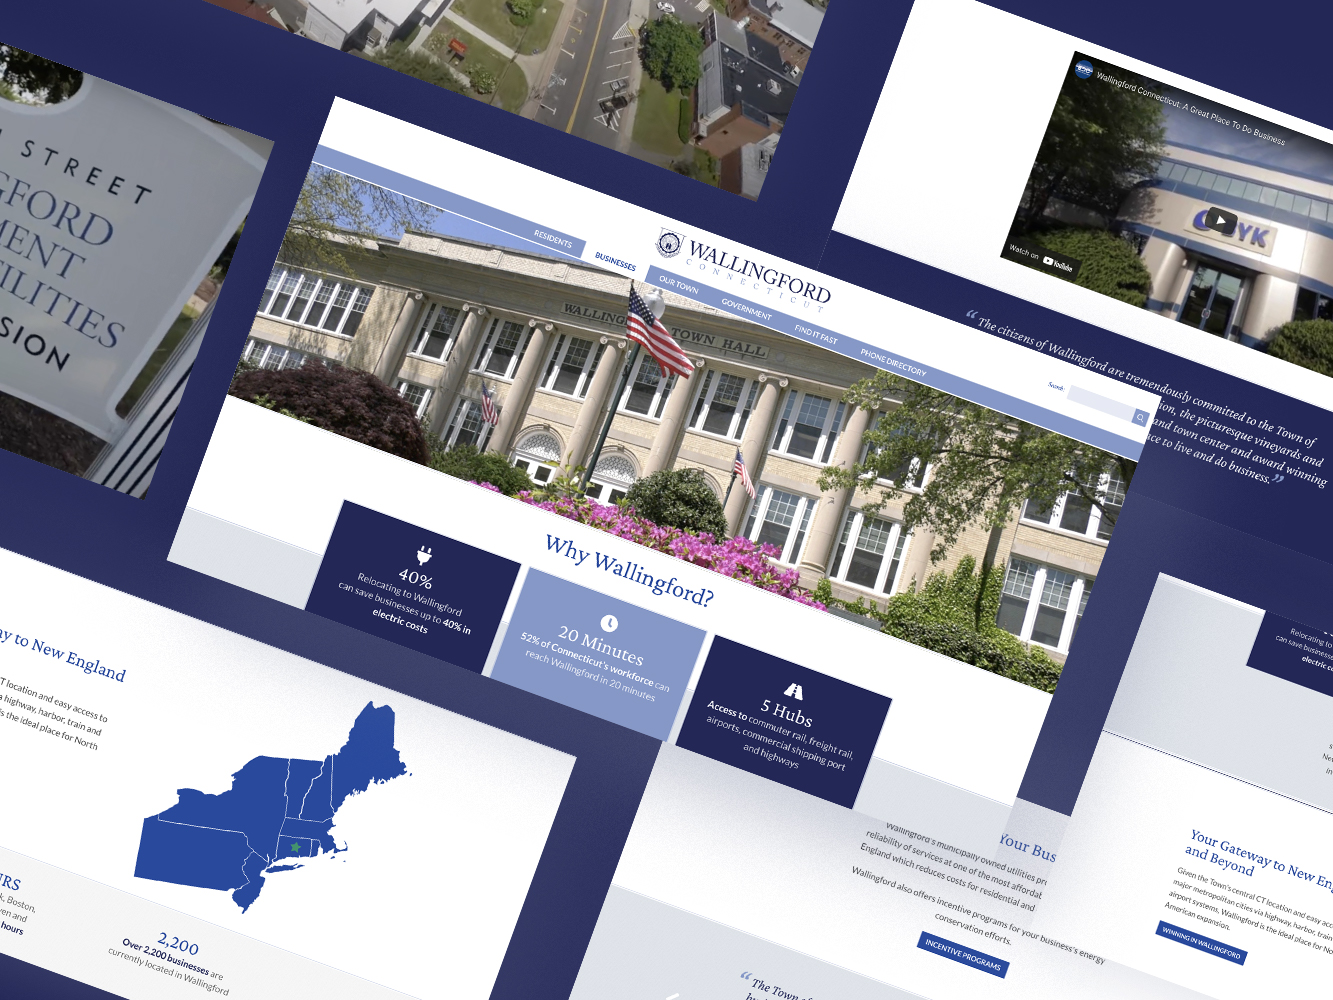 Thumbnail for Case Study: Helping Businesses Find Their Home In Wallingford CT –Positioning, UI/UX Design